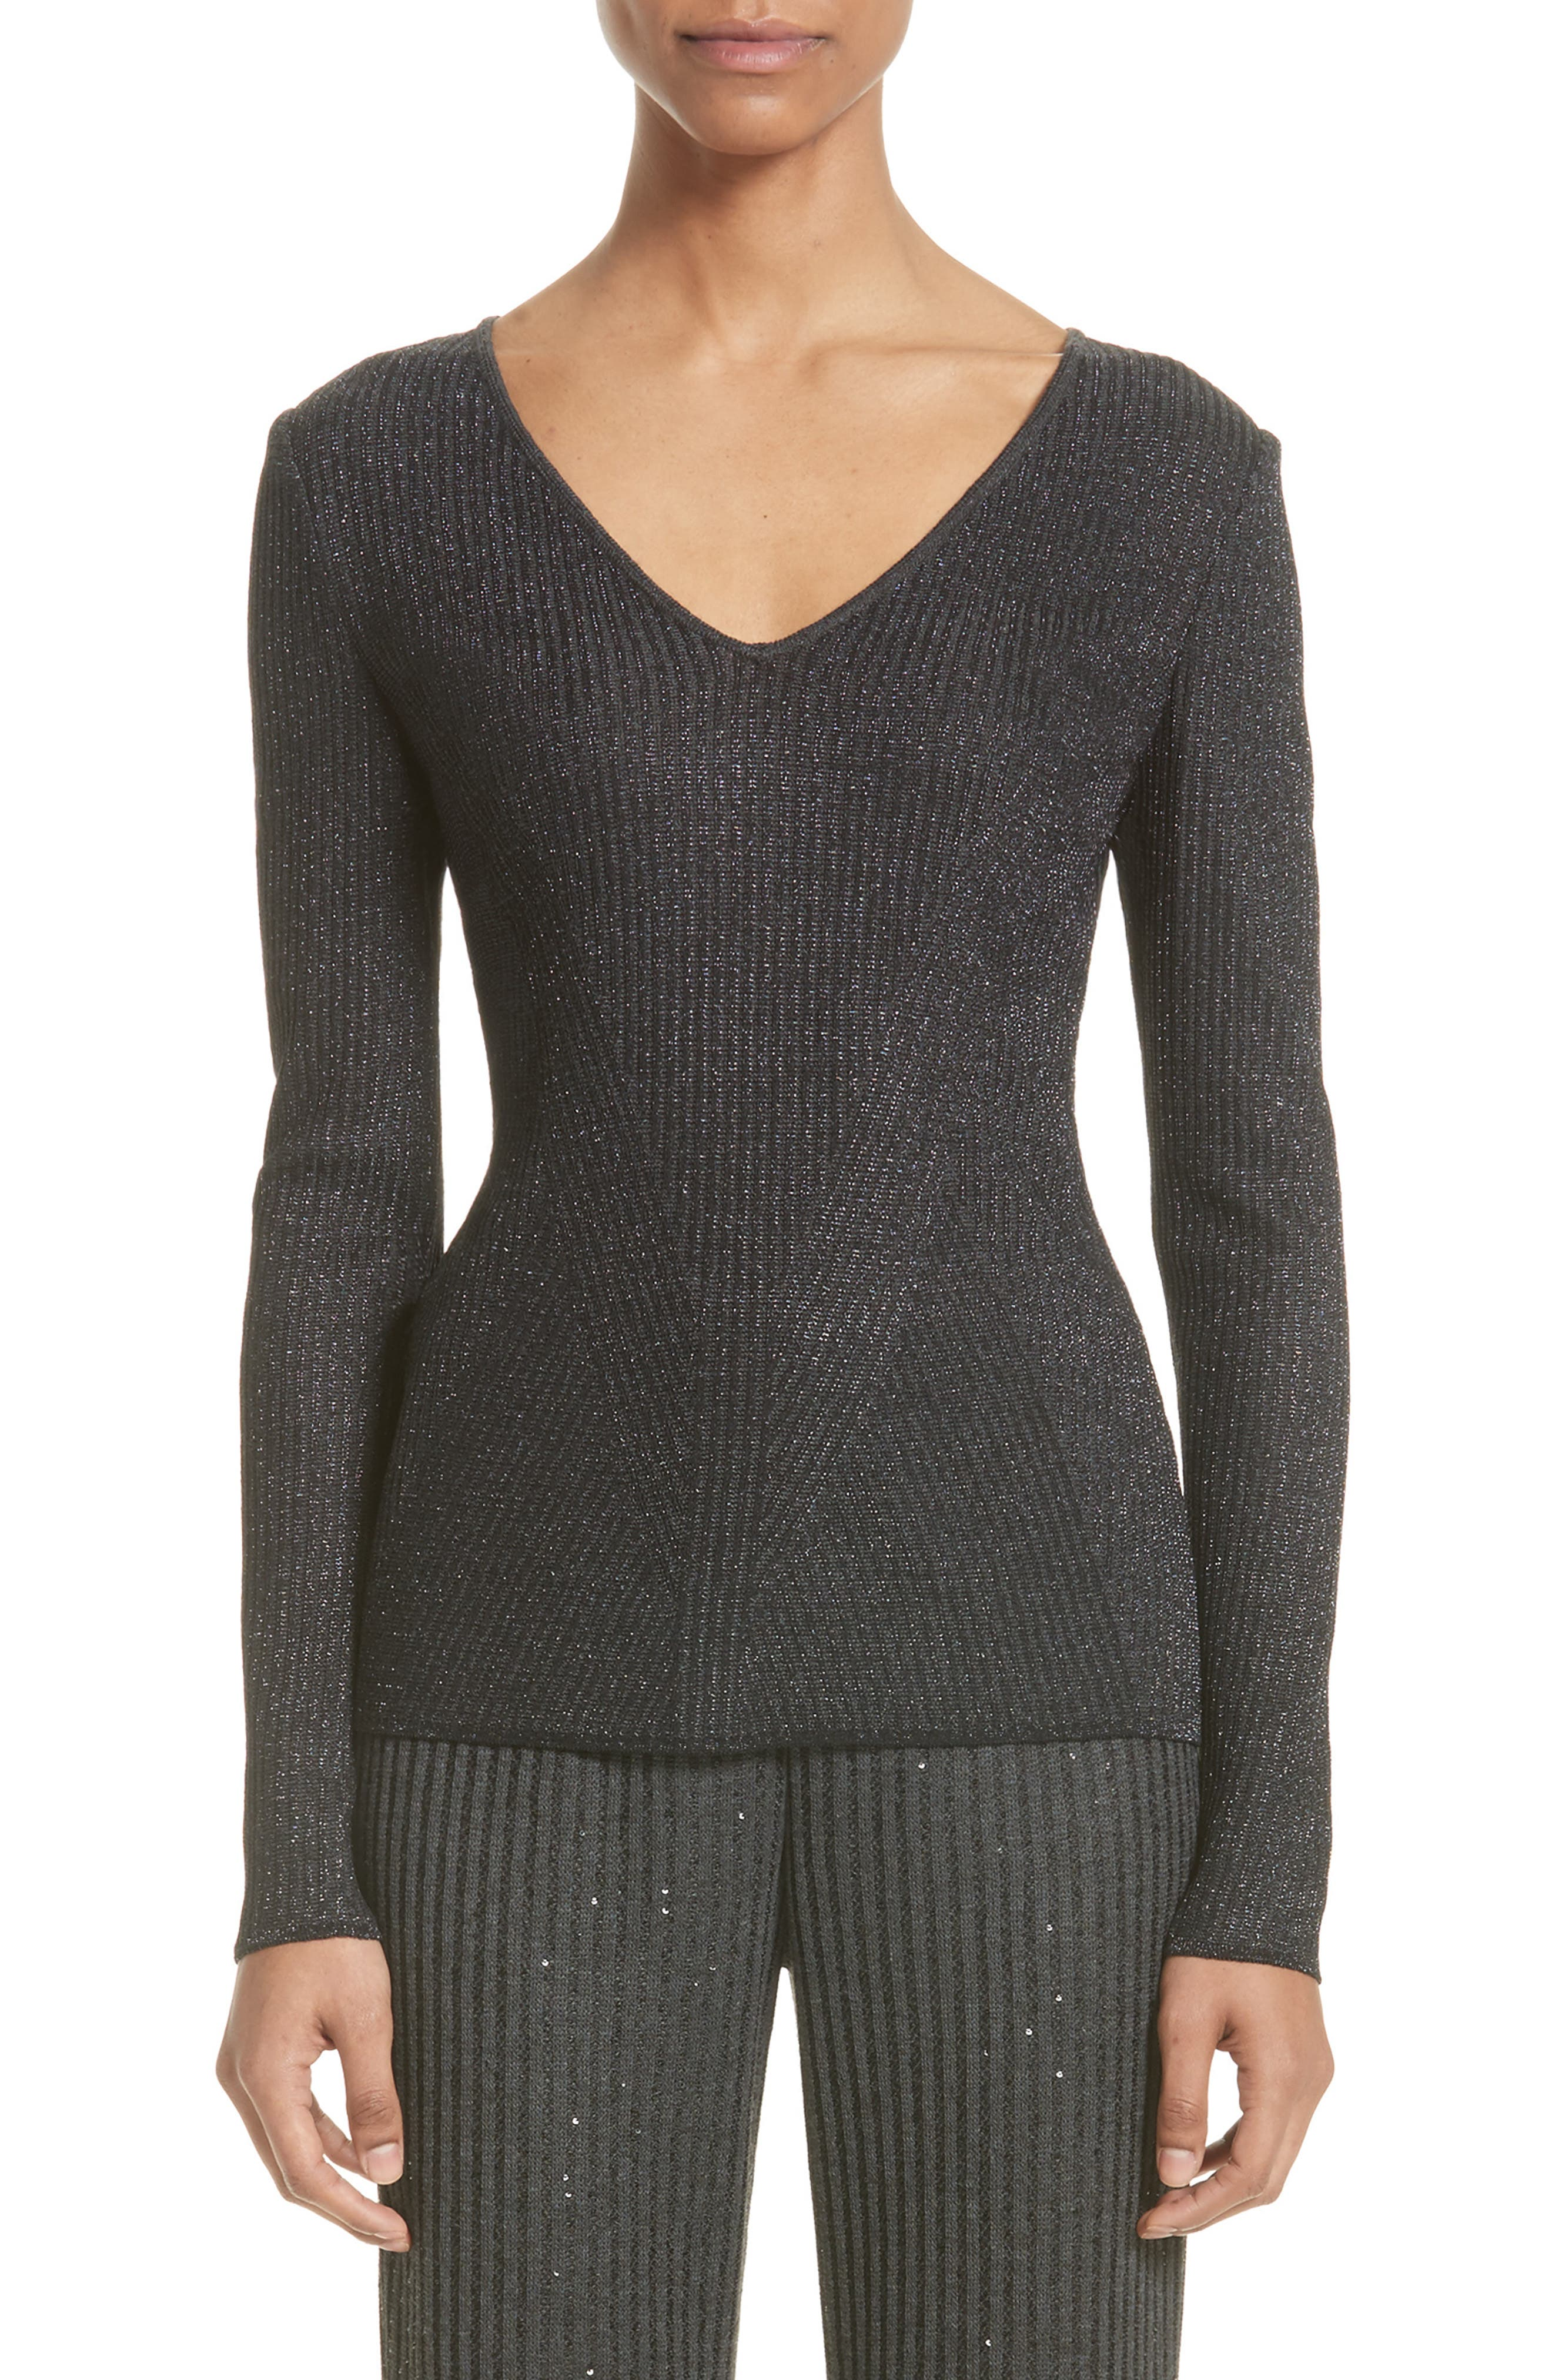 Main Image - St. John Collection Engineered Rib Sparkle Knit Sweater